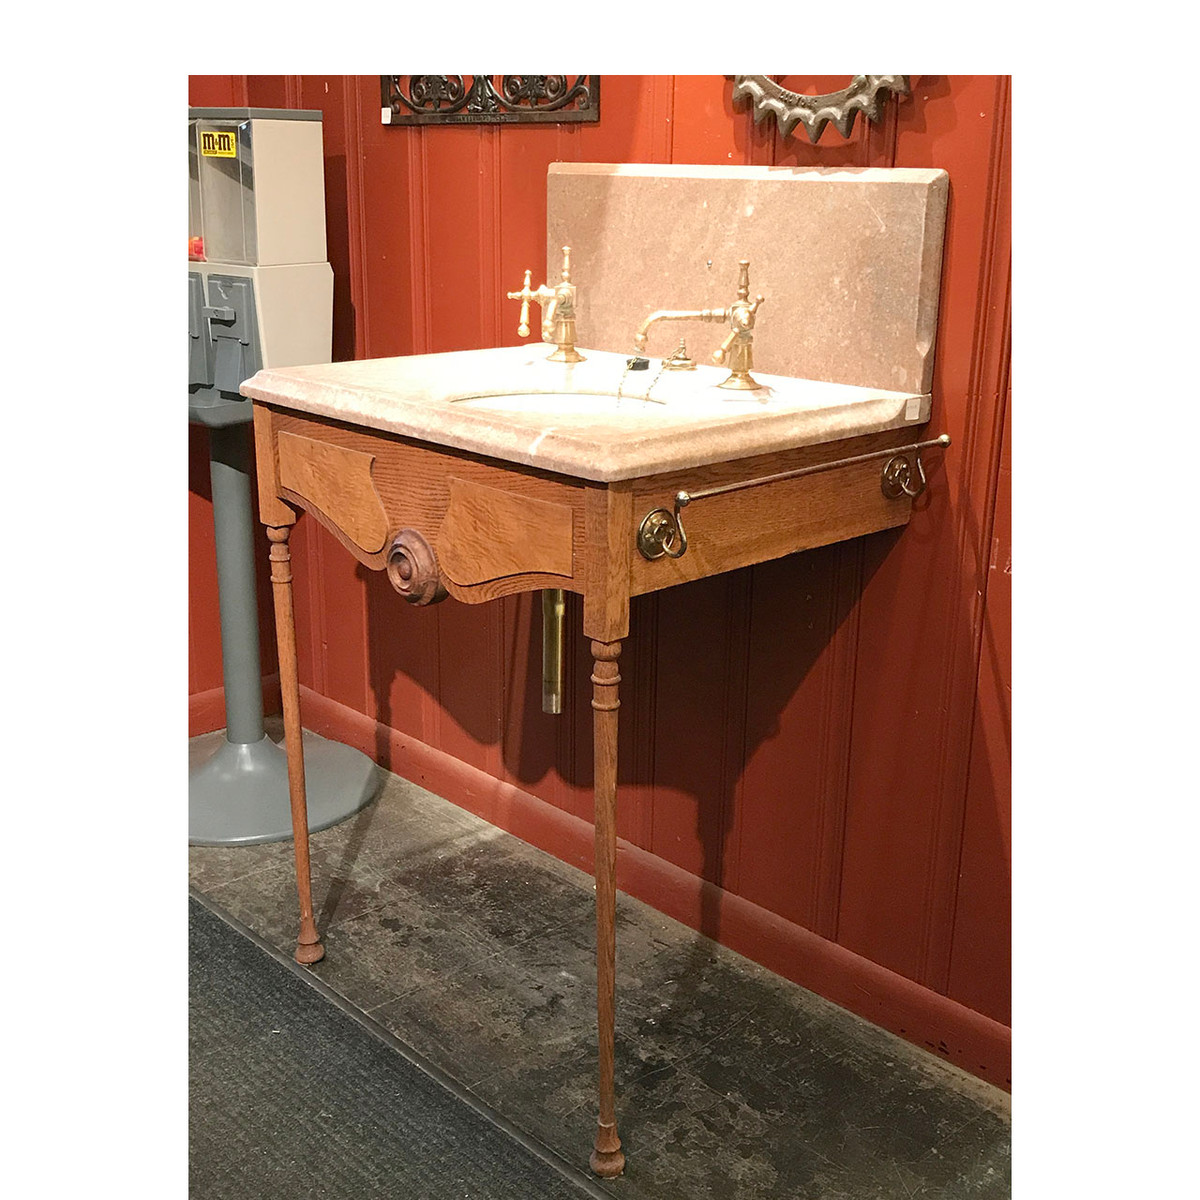 P17015 - Antique Marble and Ceramic Sink on Oak Stand